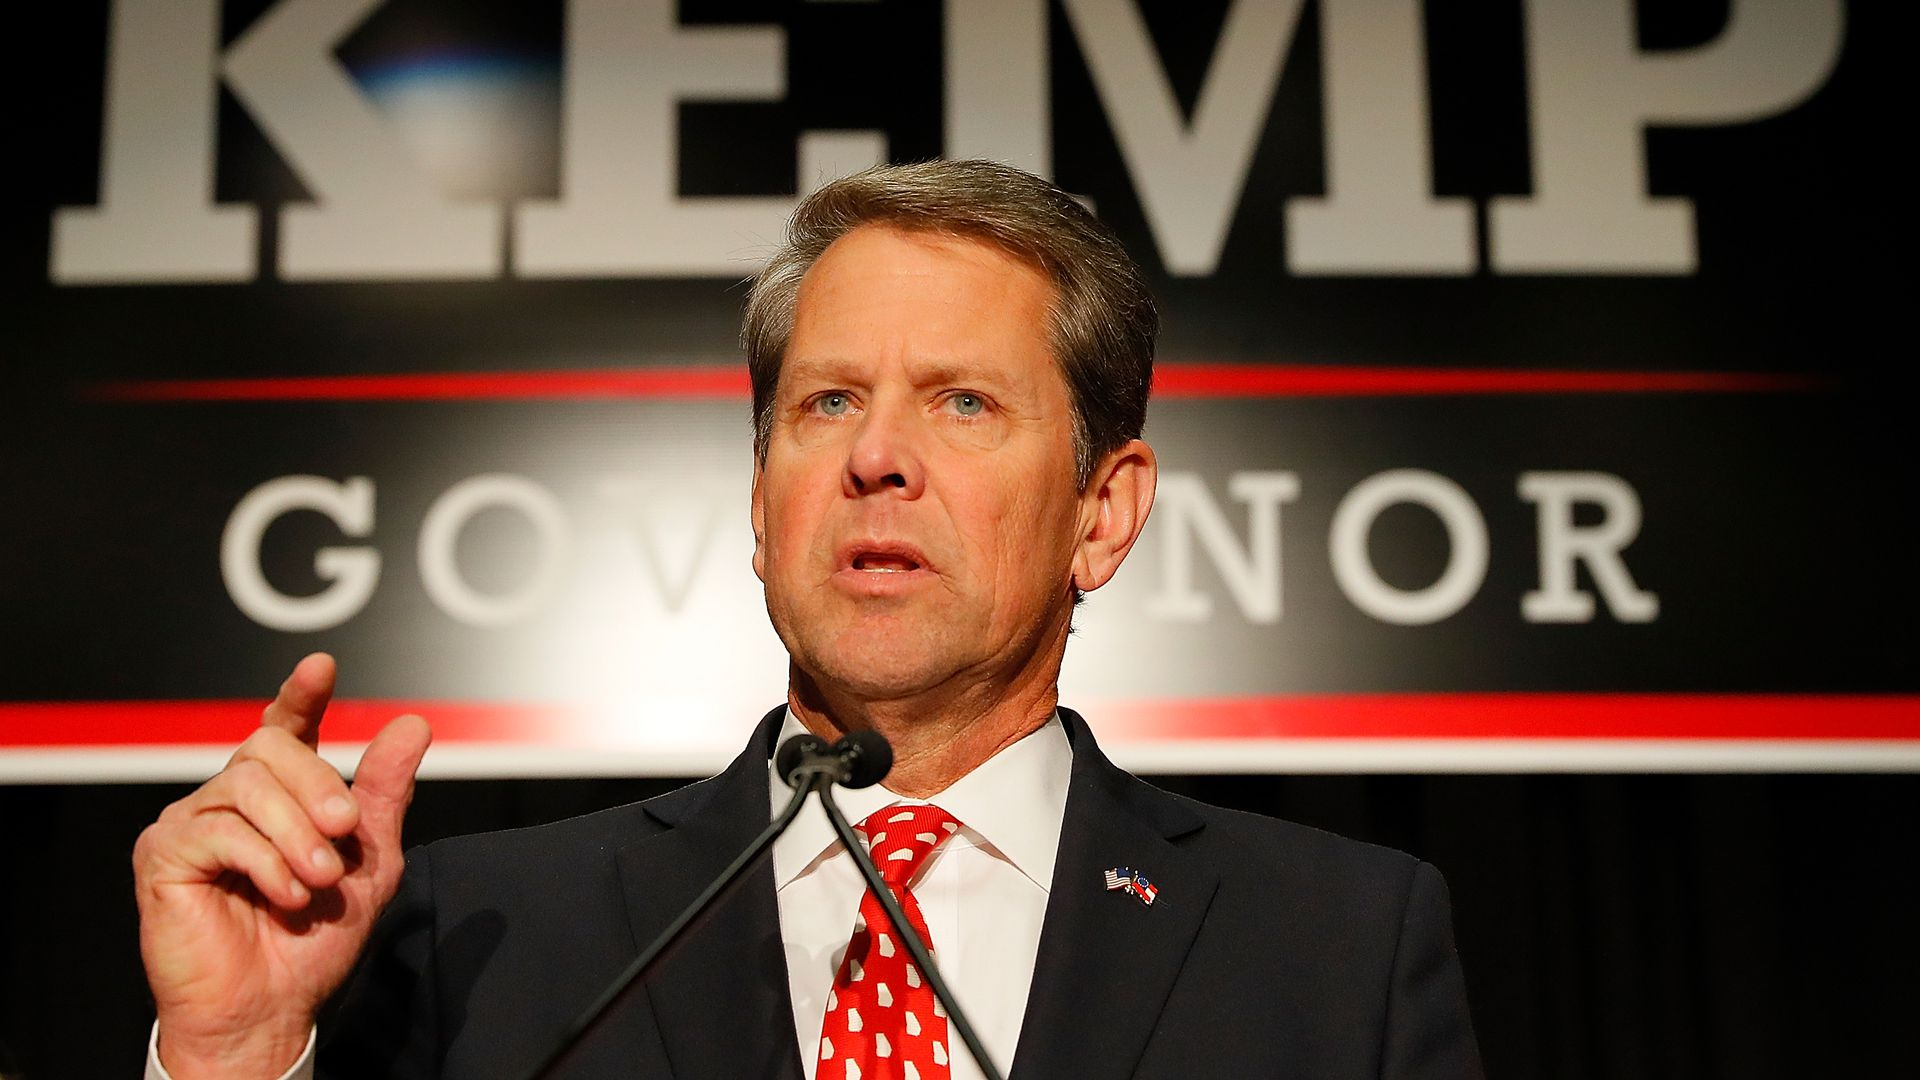 Georgia Republican governor Brian Kemp